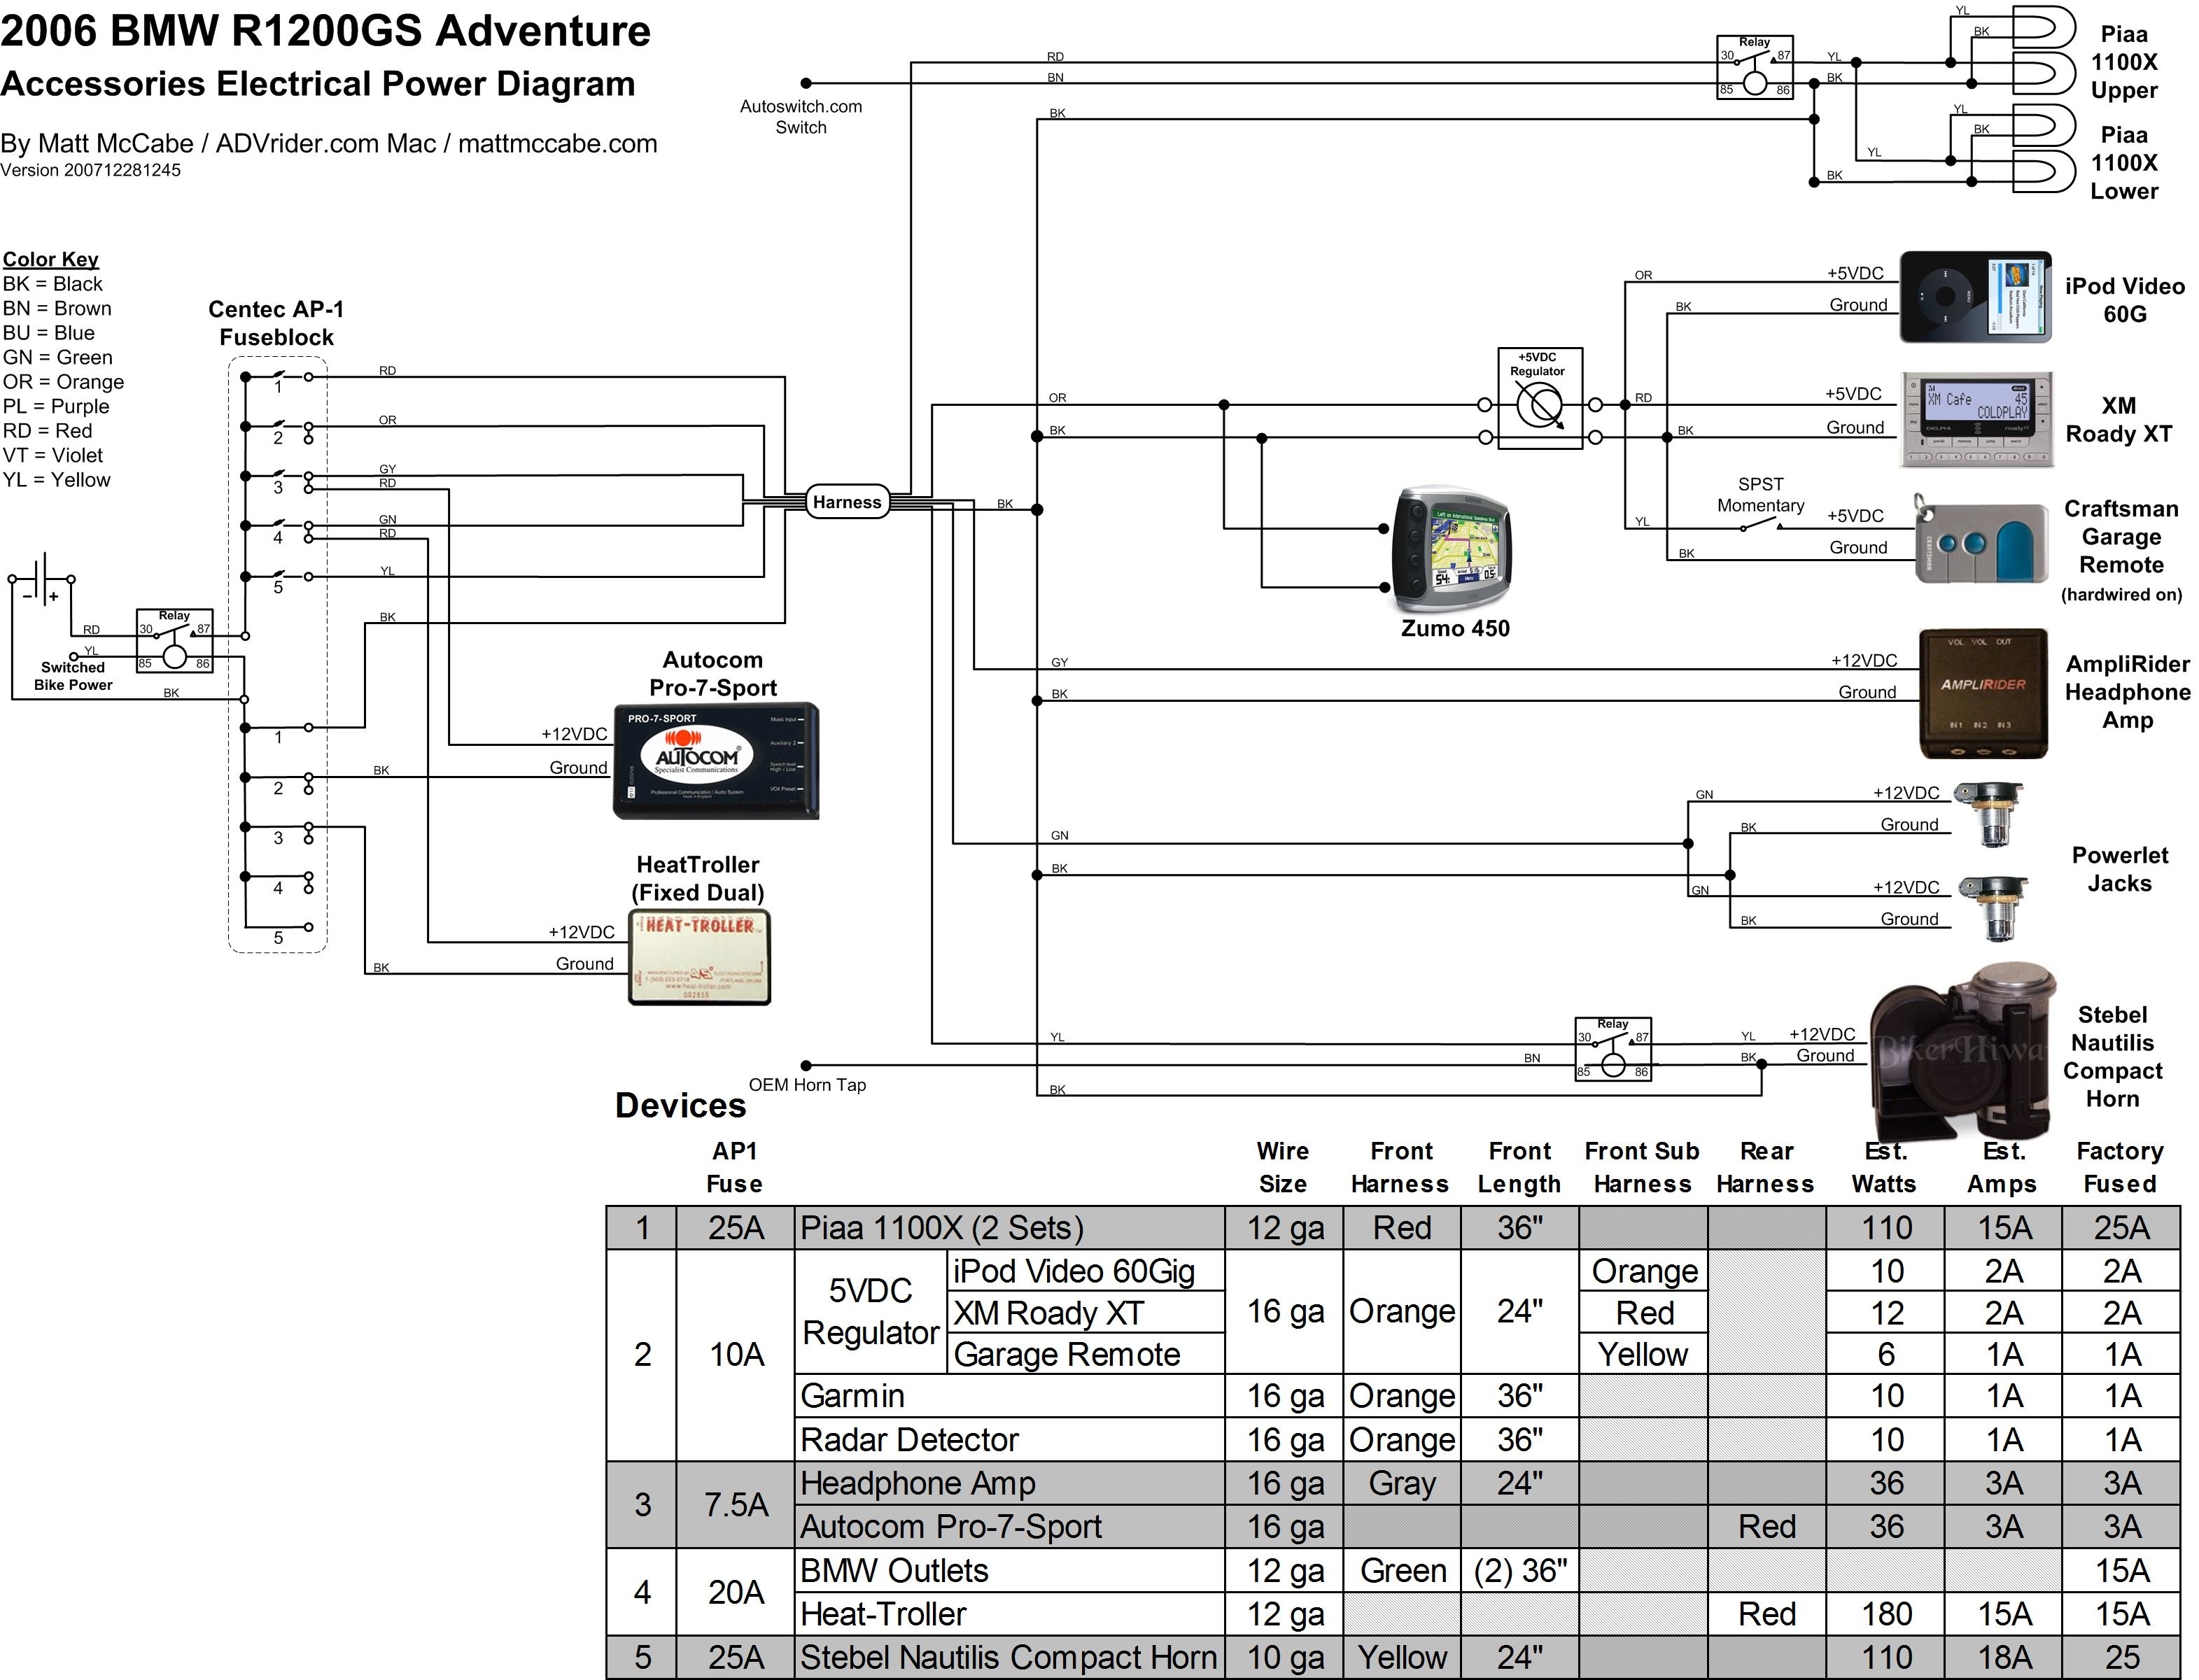 BMW_R1200GSAdv_Accessories_Wiring_Diagram_Version_200712281245_McCabe share bmw_wiring_diagrams centech ap-2 wiring diagram at bayanpartner.co